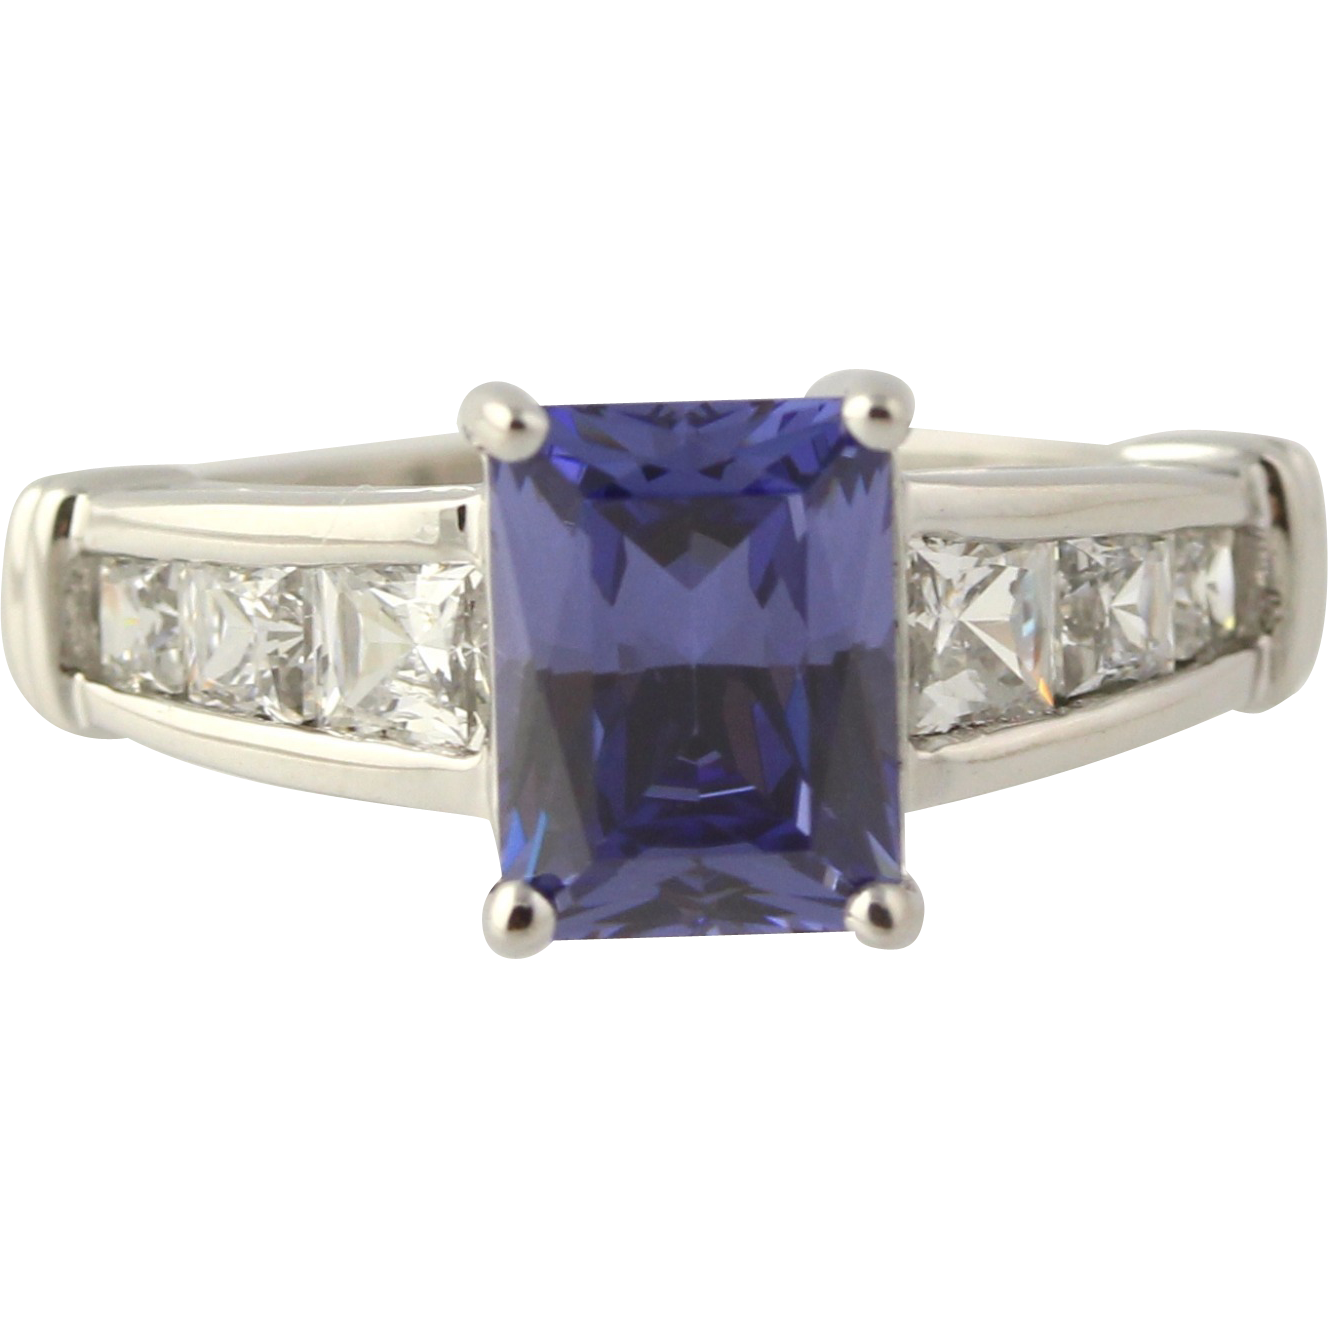 Cubic Zirconia Cocktail Ring-14k White Gold Simulated Tanzanite 5 1/4 Fashion CZ